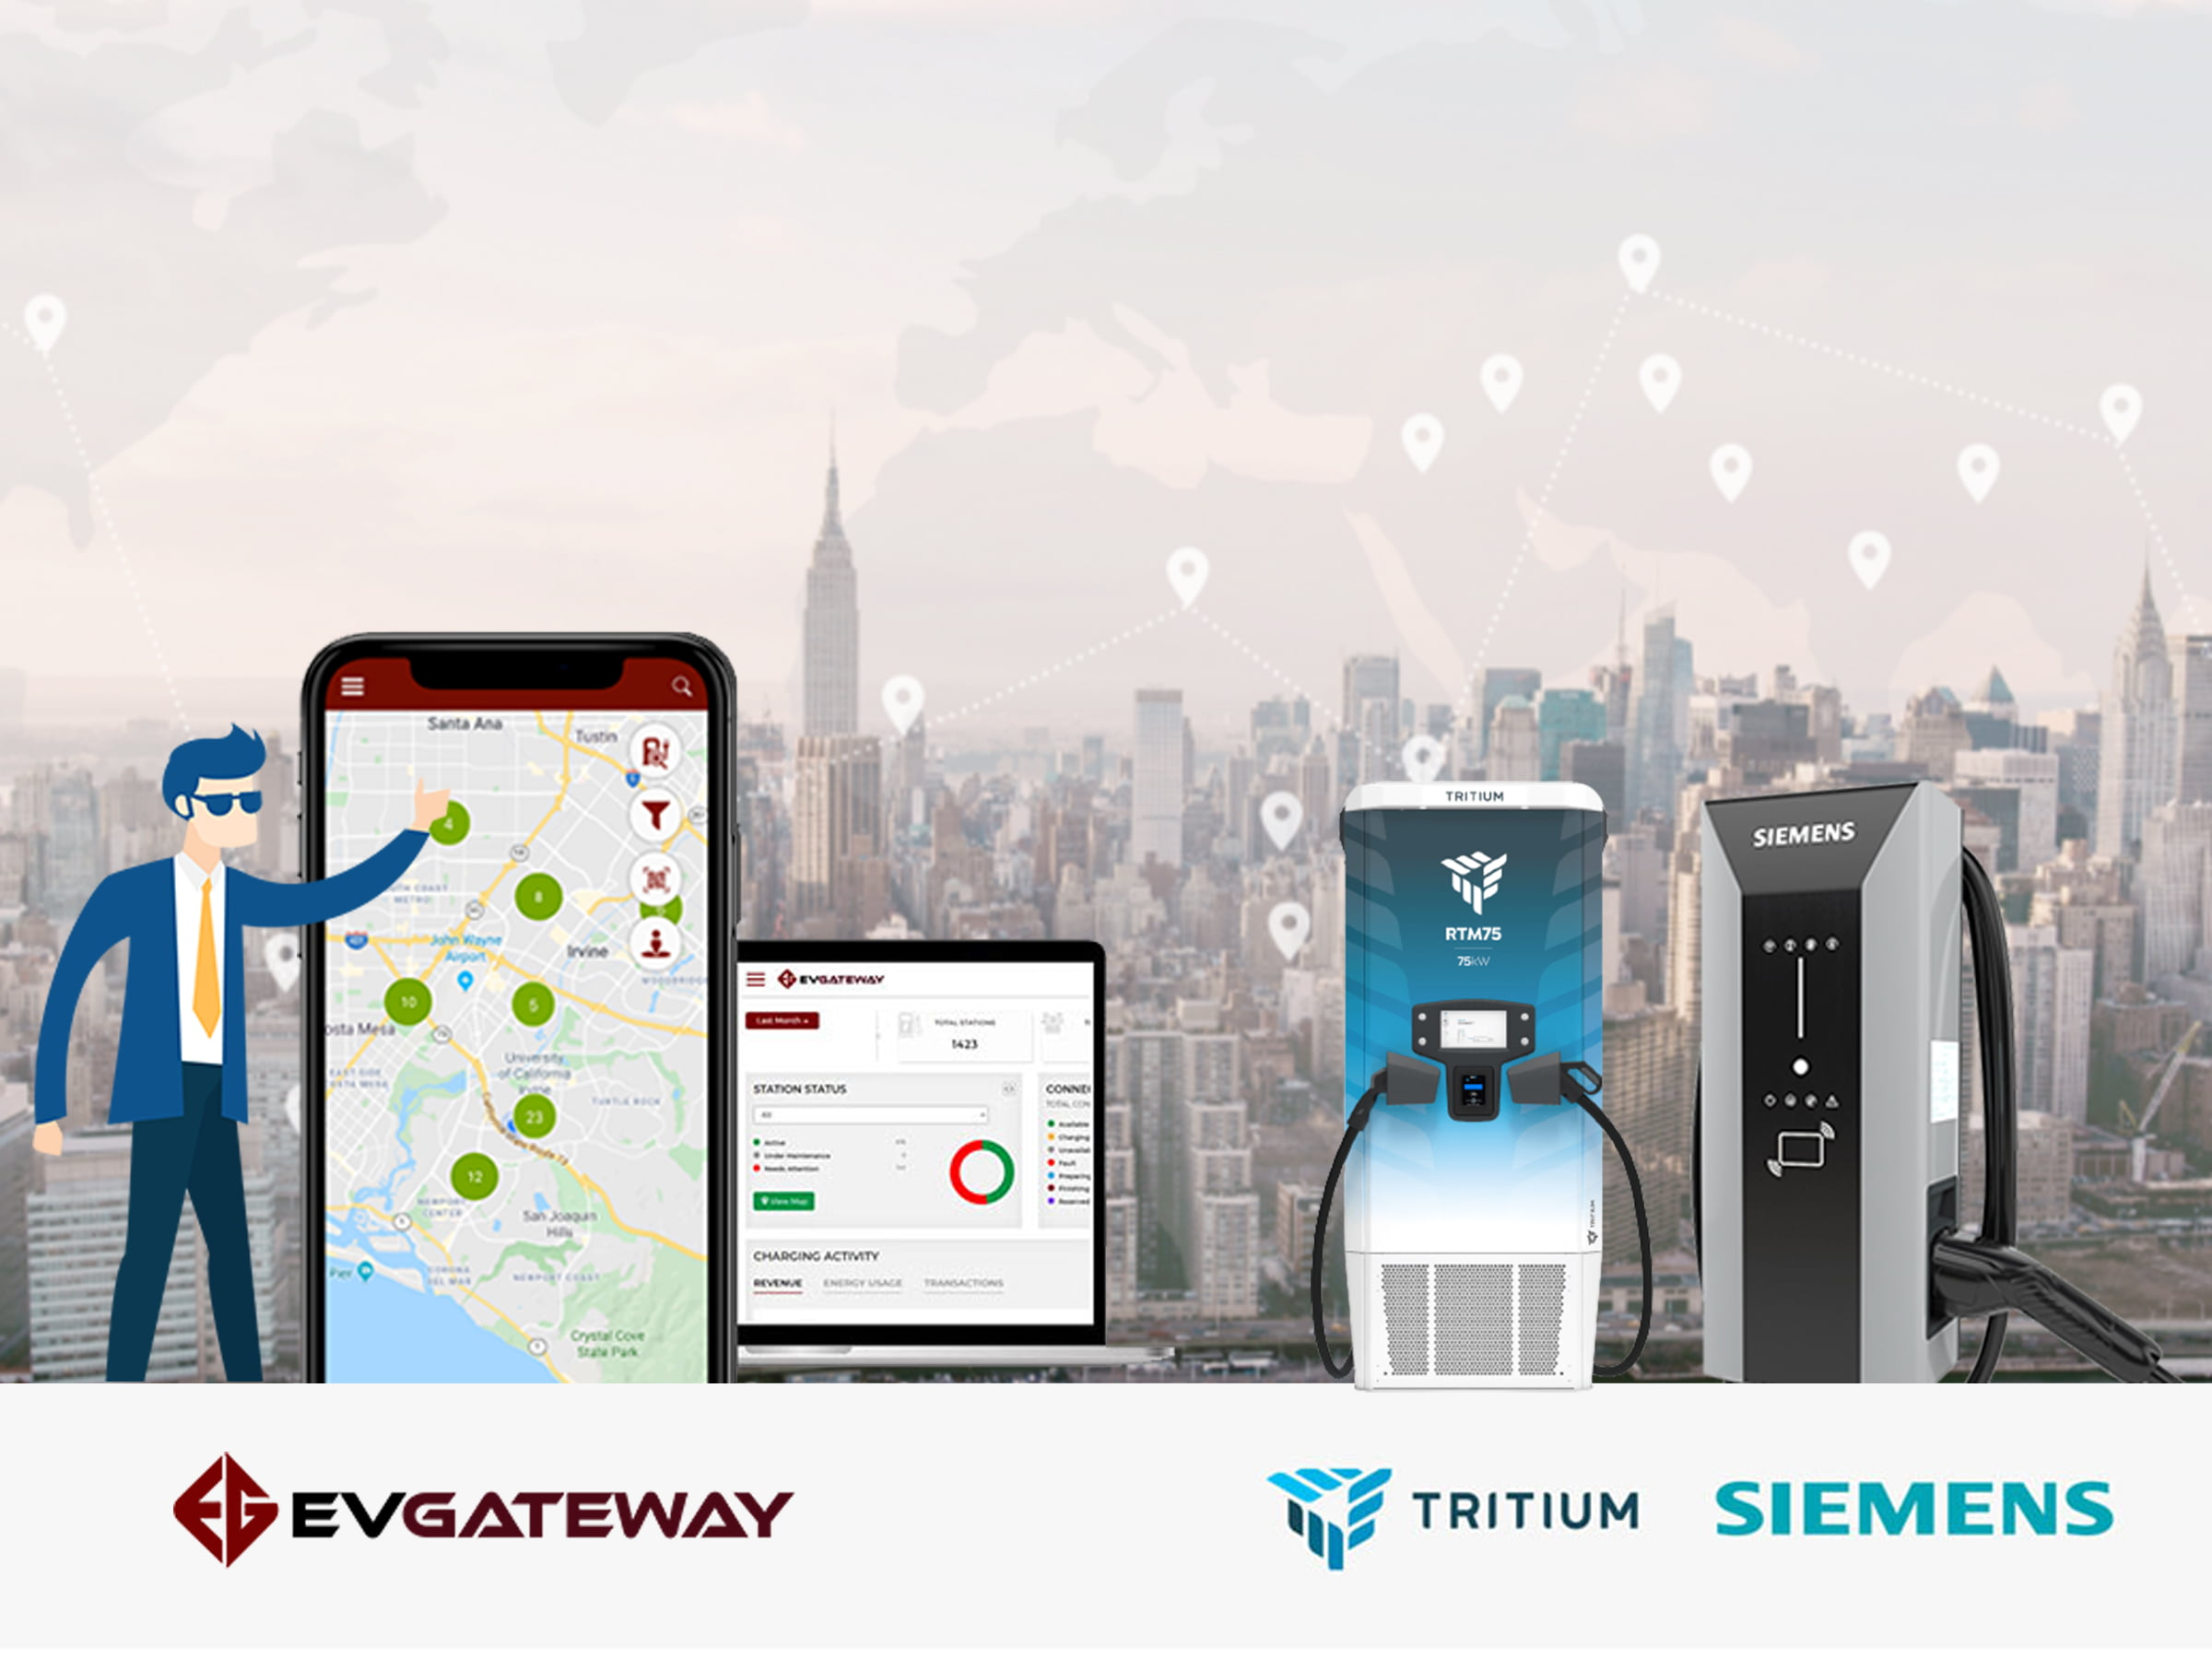 EvGateway to Provide Turnkey EV Charging Solution for Southern California Parks and Beaches With Technology From SIEMENS and Tritium